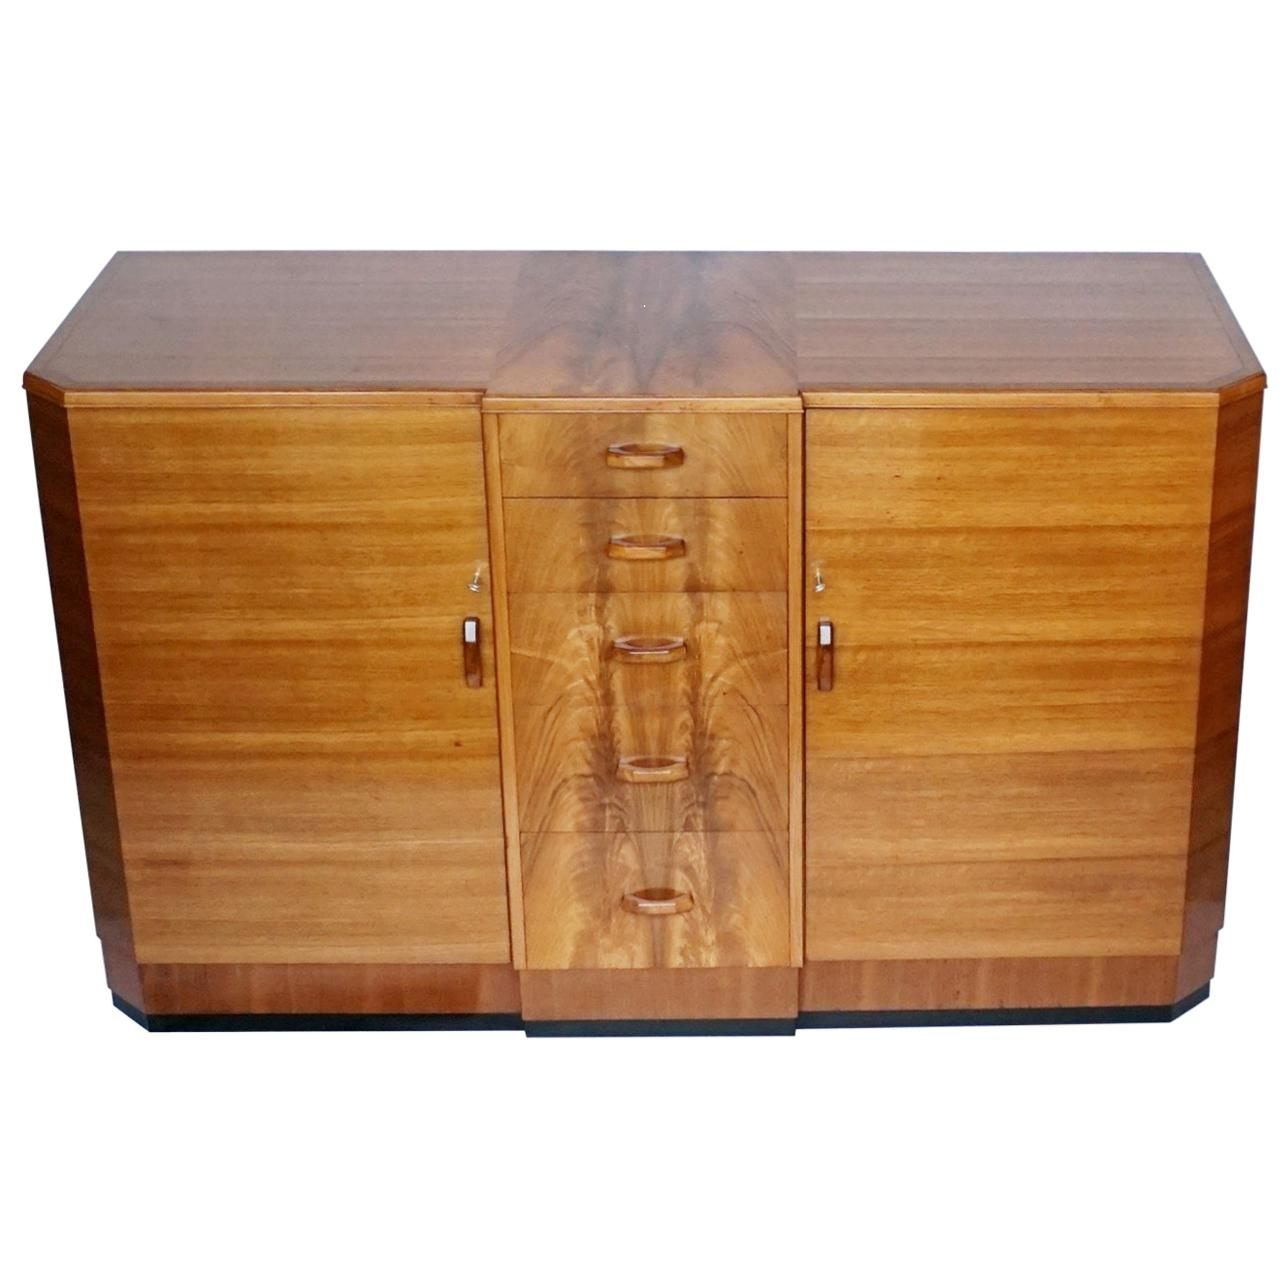 Art Deco Sideboard by Heal's of London circa 1930 Burr and Figured Walnut